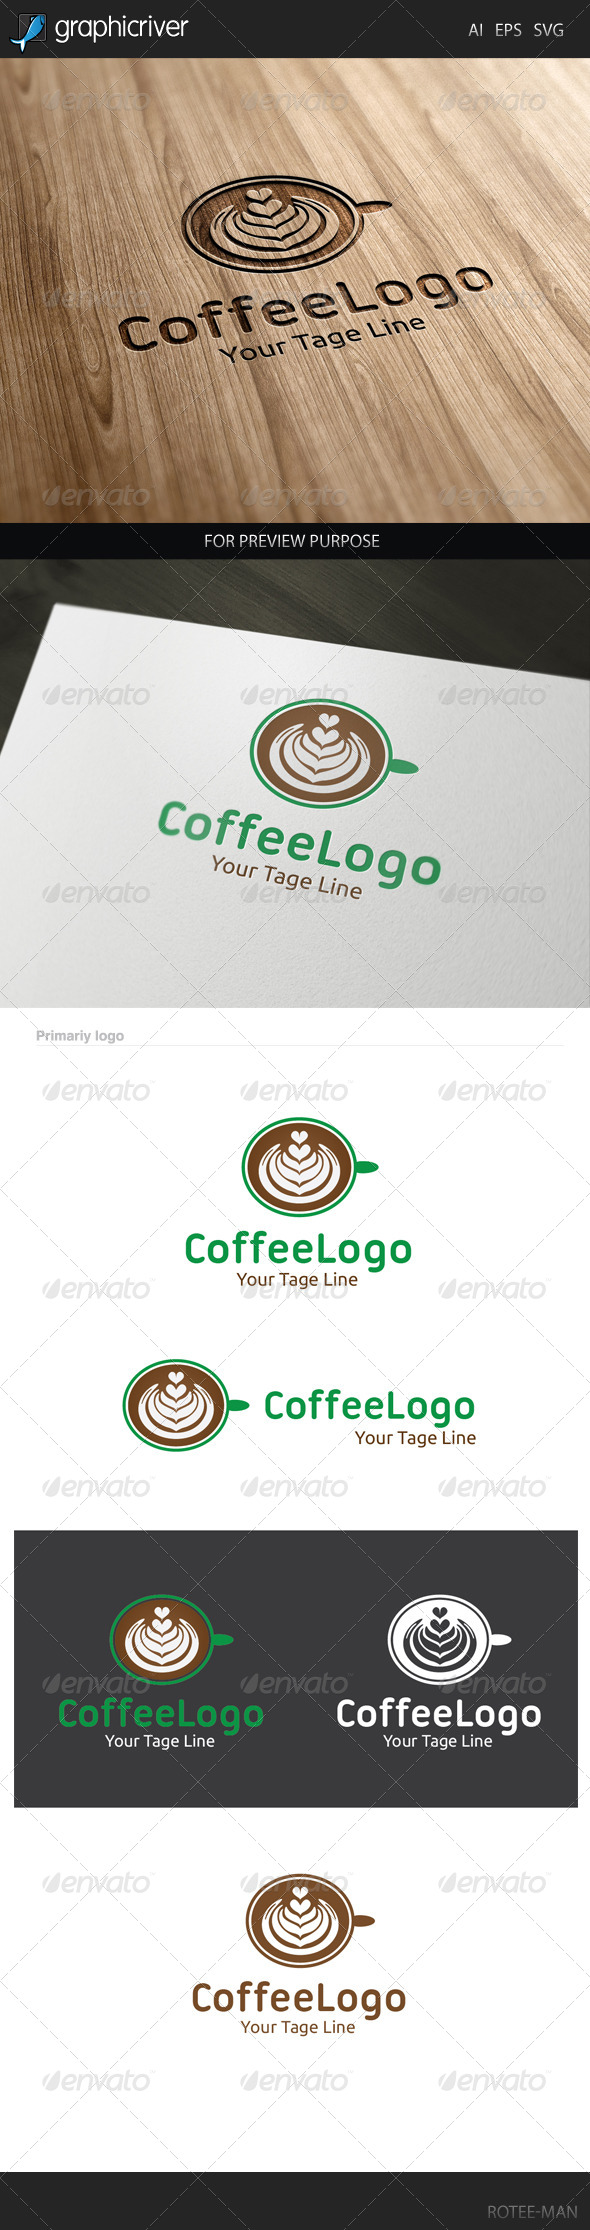 GraphicRiver Coffee Logo 7907230